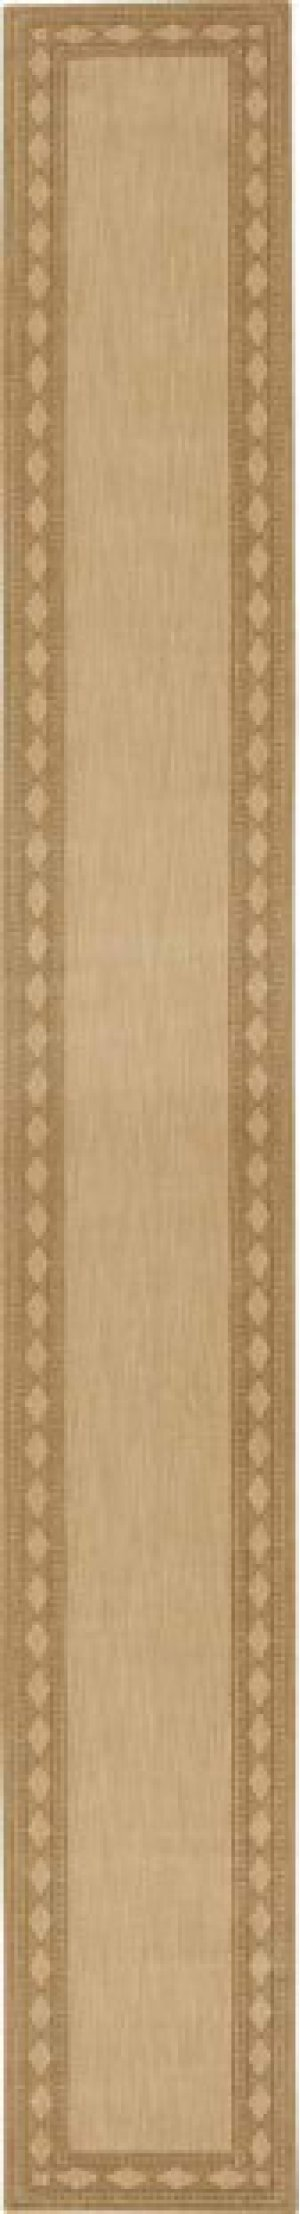 Hard To Find Sizes Grand Velvet Pt99 Beige Rectangle Rug 3' X 24'